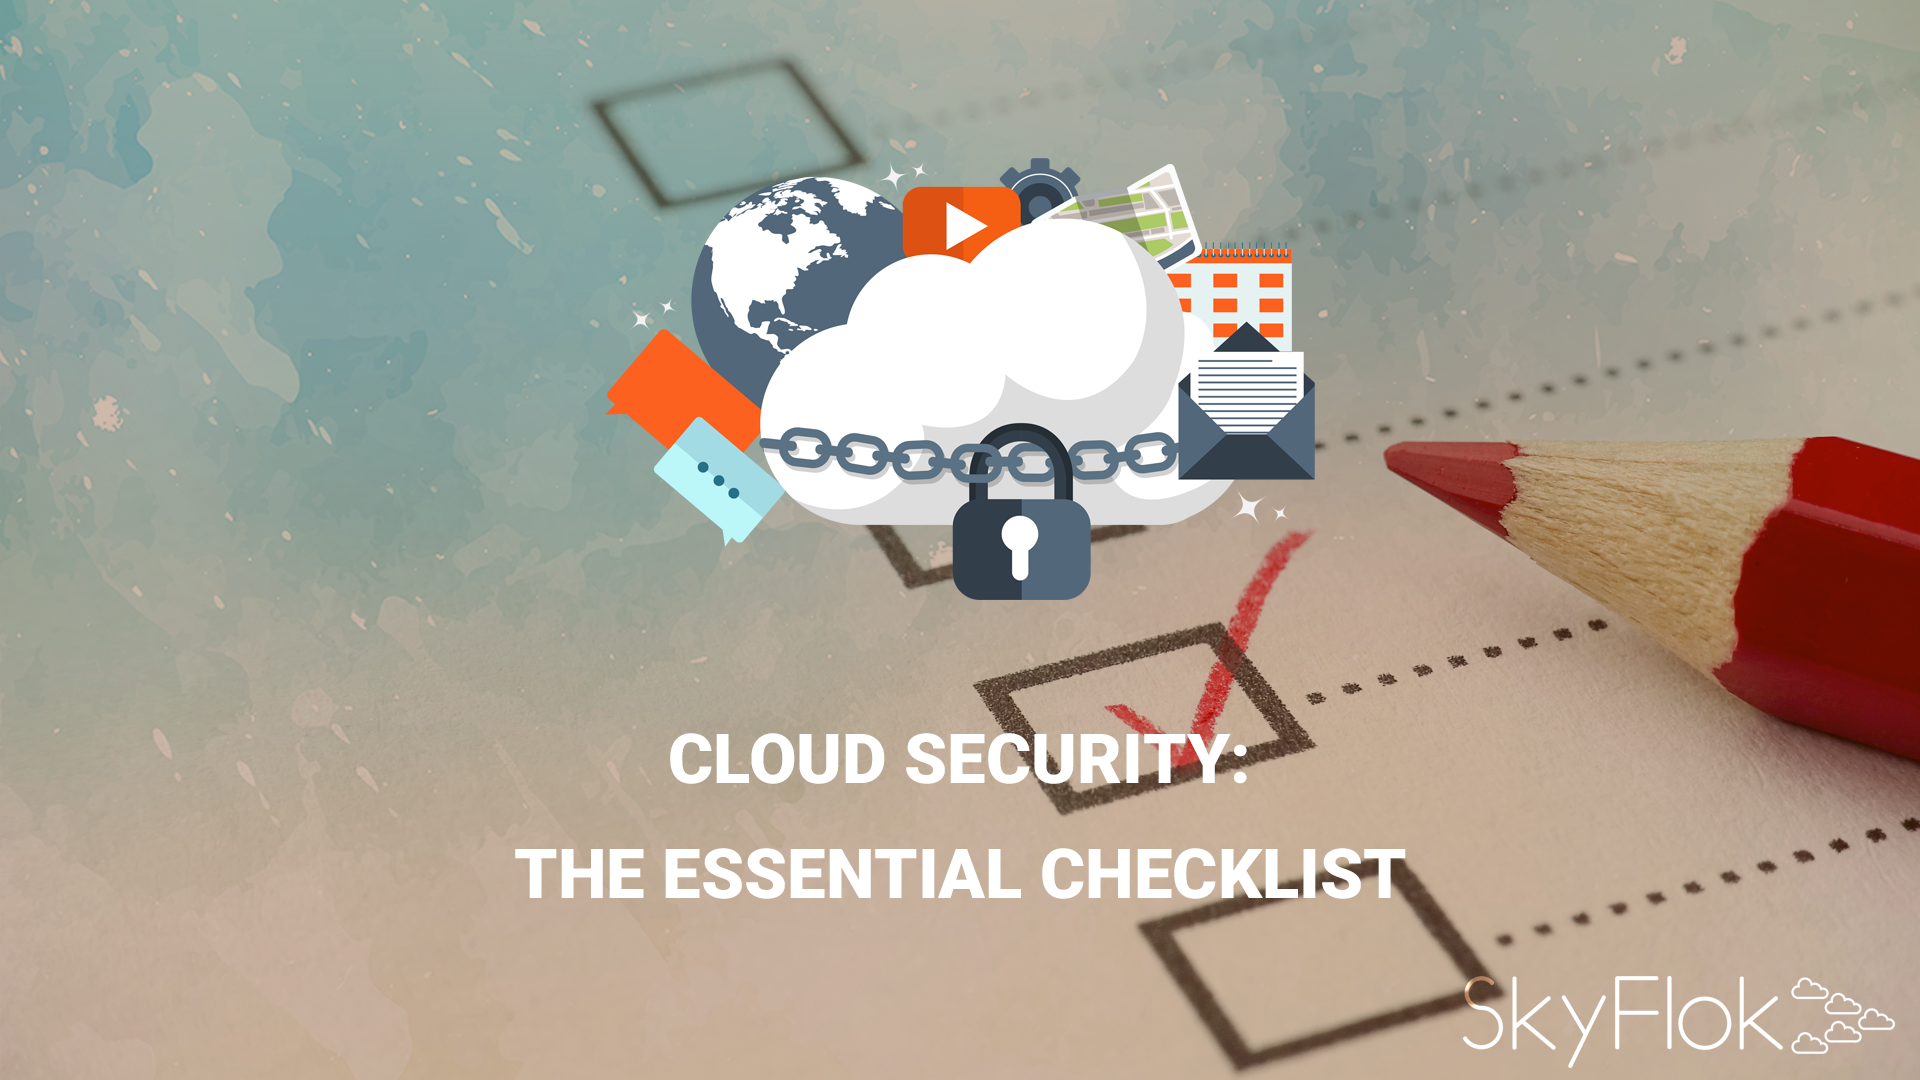 Cloud security: The essential checklist